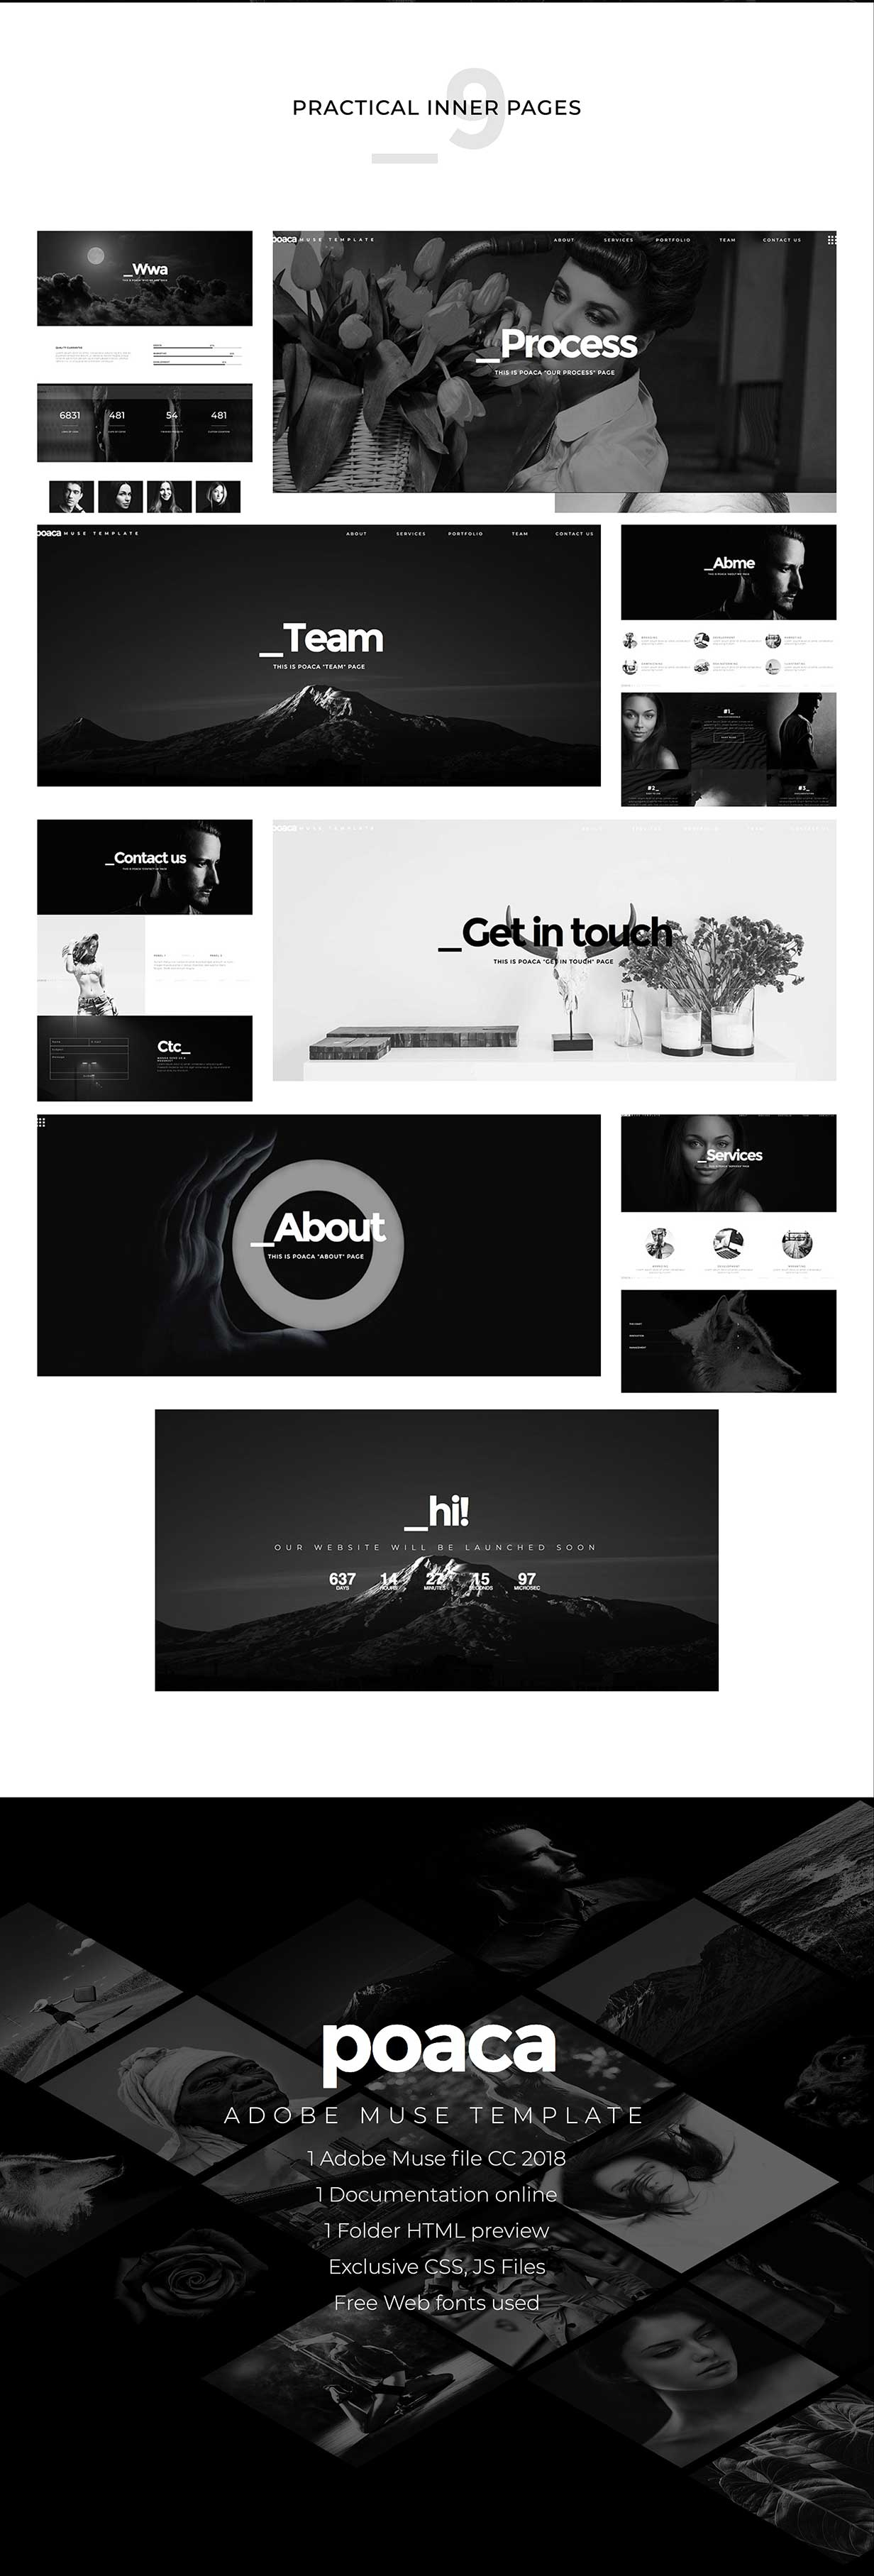 Poaca Muse Template - 3